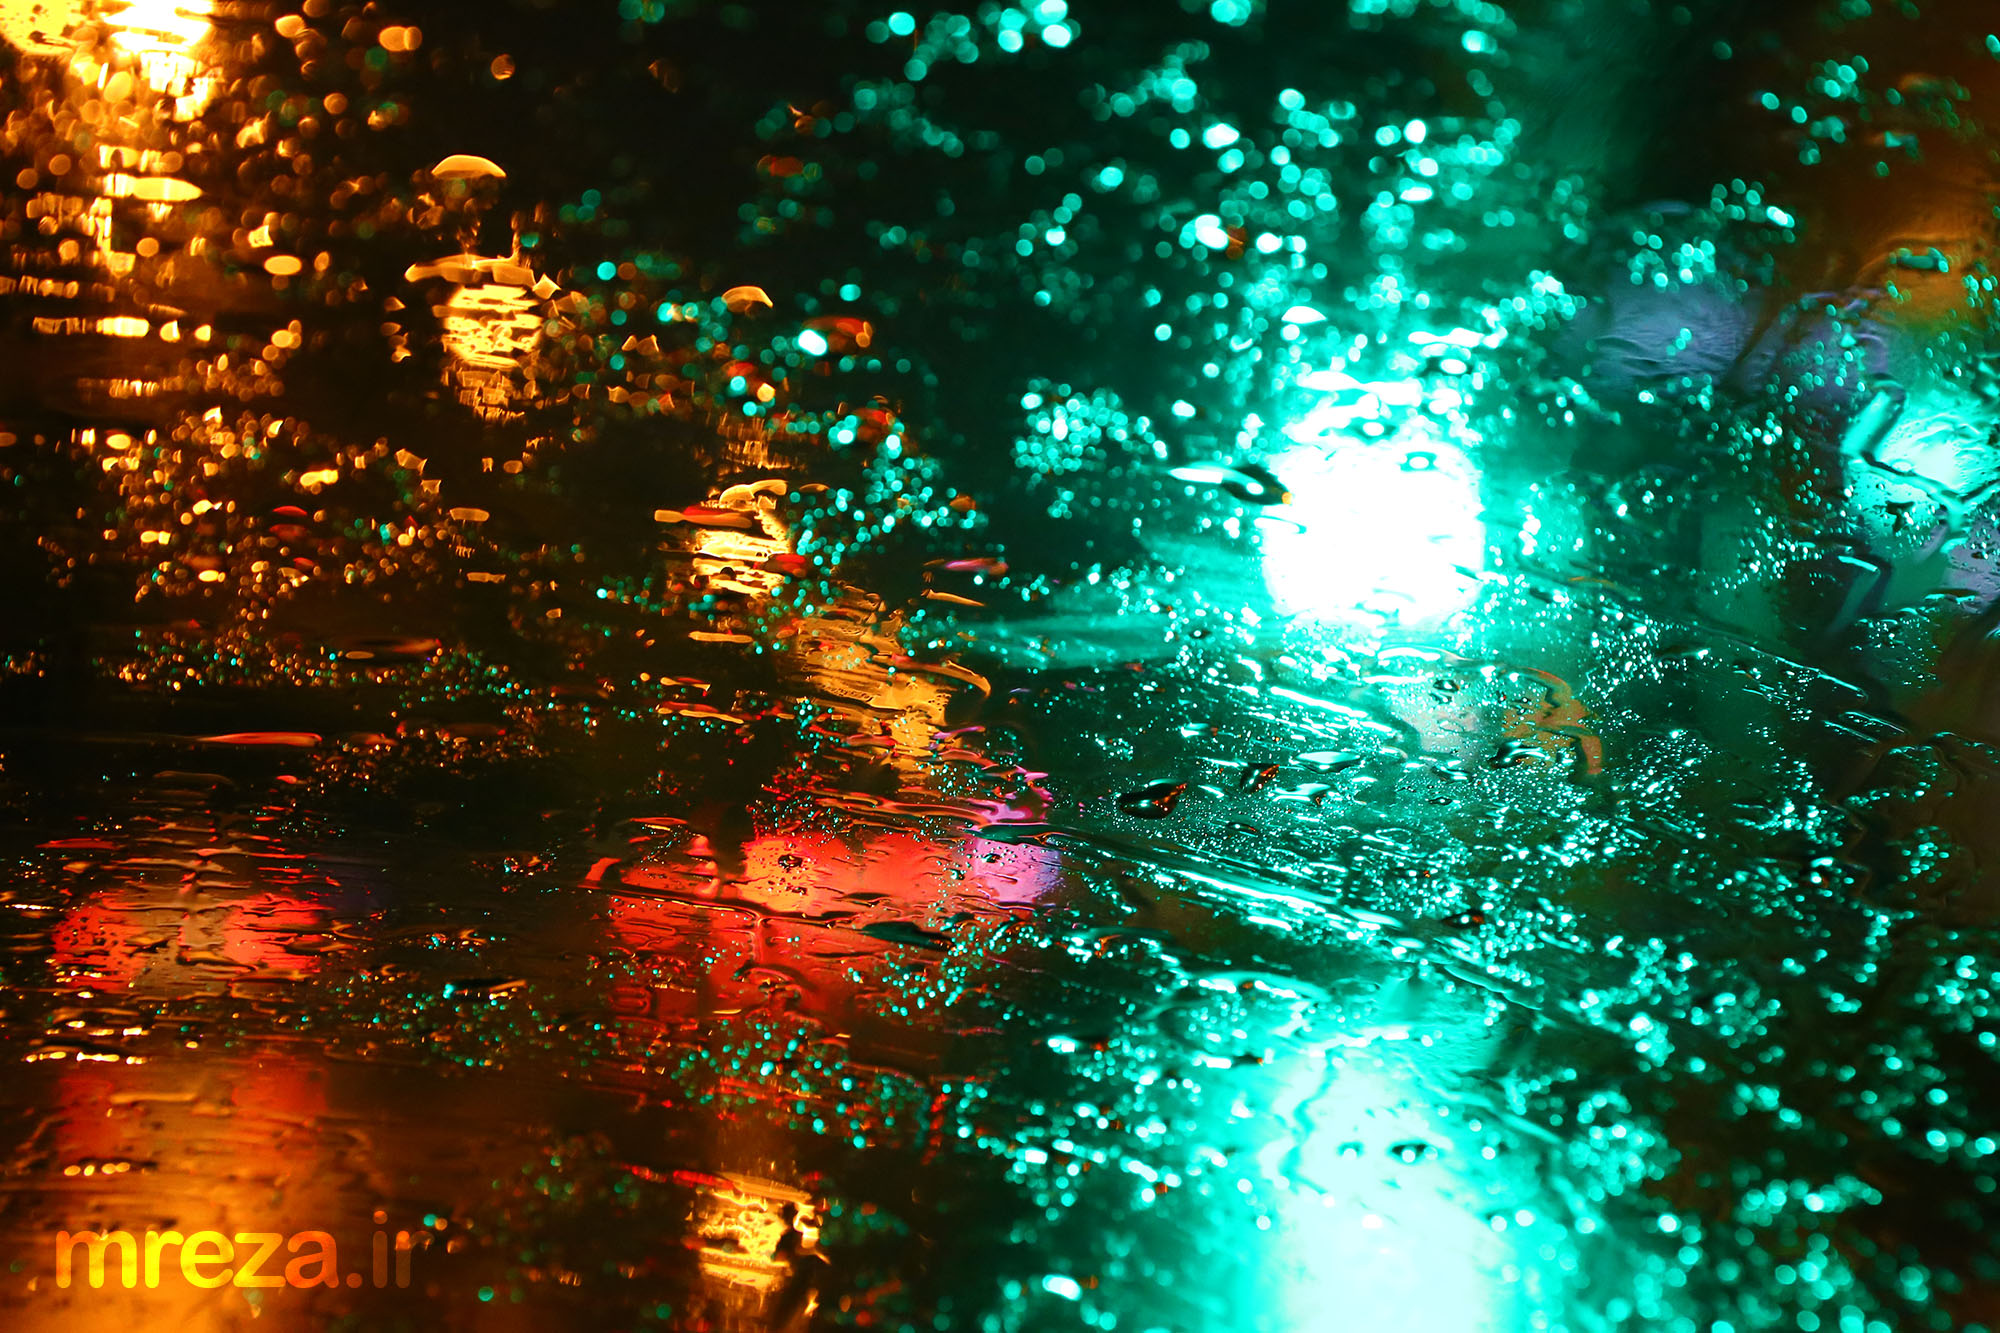 Rain from behind the glass...